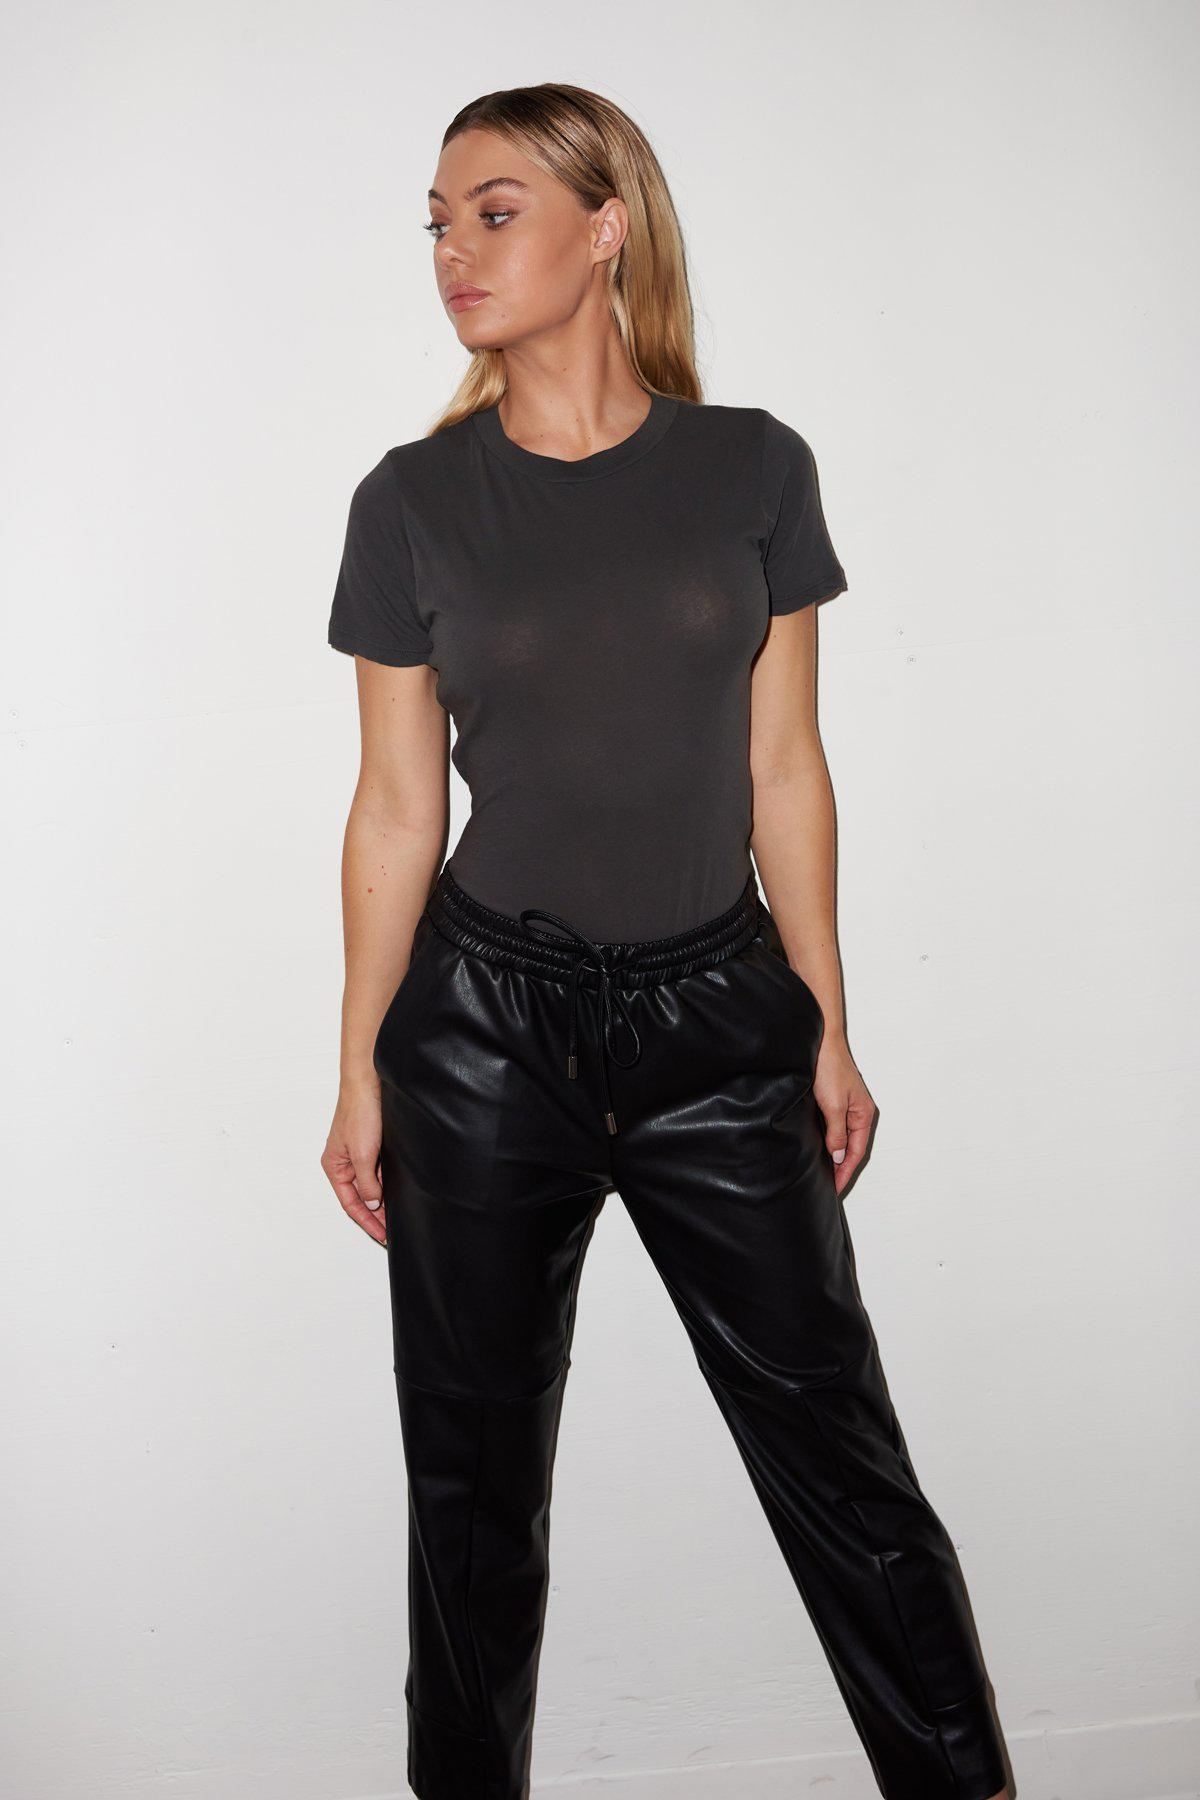 Short Sleeve Fitted Bodysuit - Pirate Black